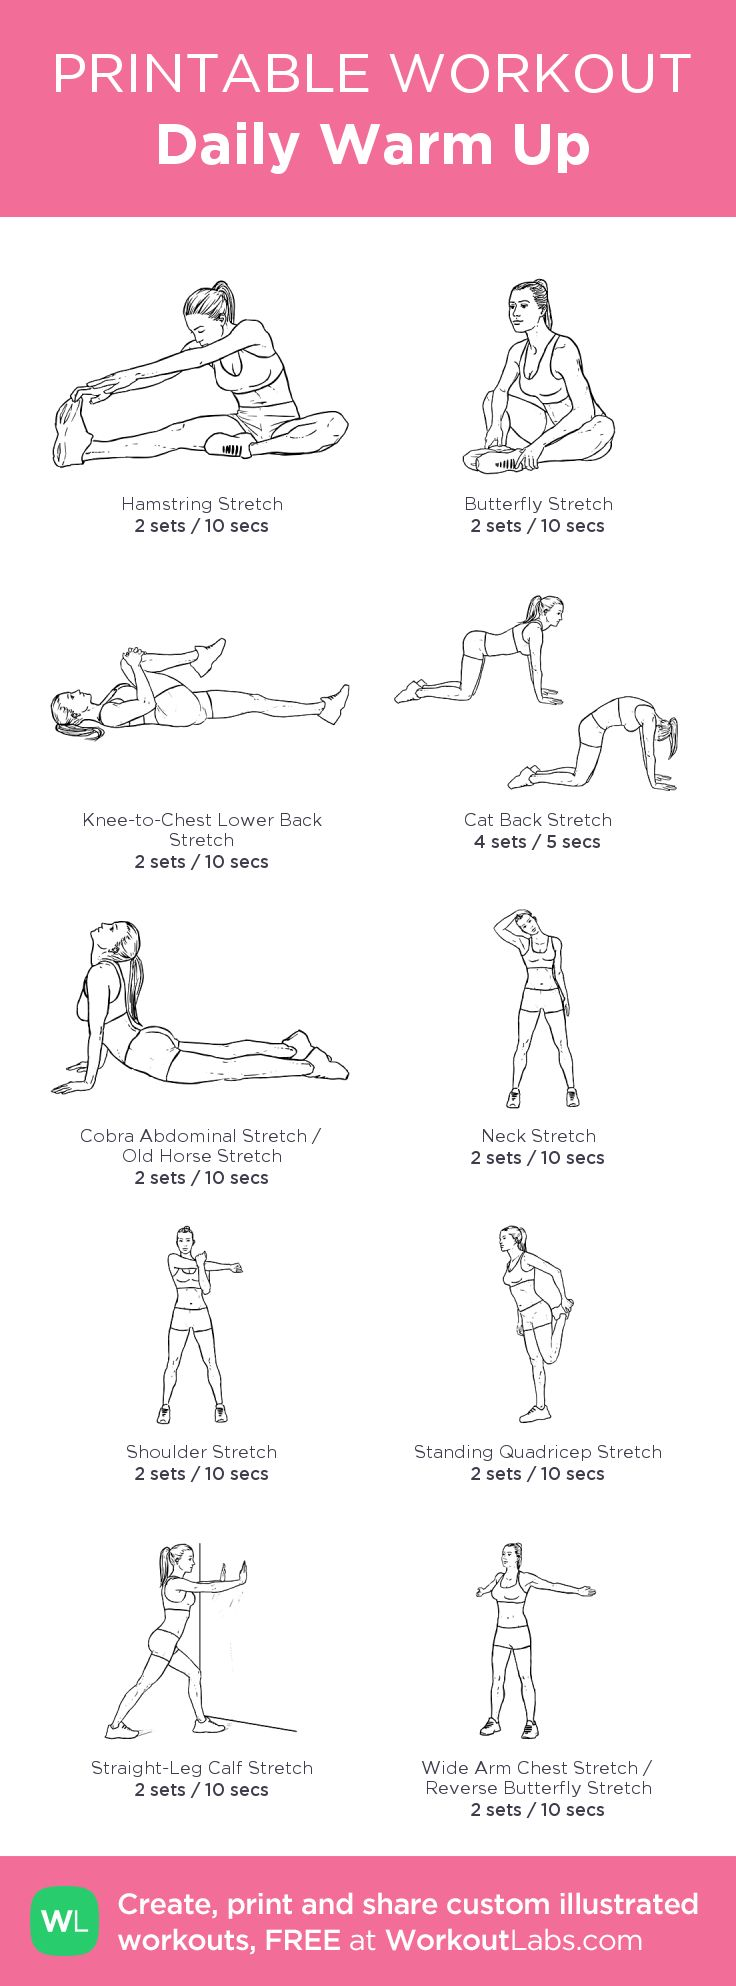 best Body Mind Soul images on Pinterest  Exercise workouts